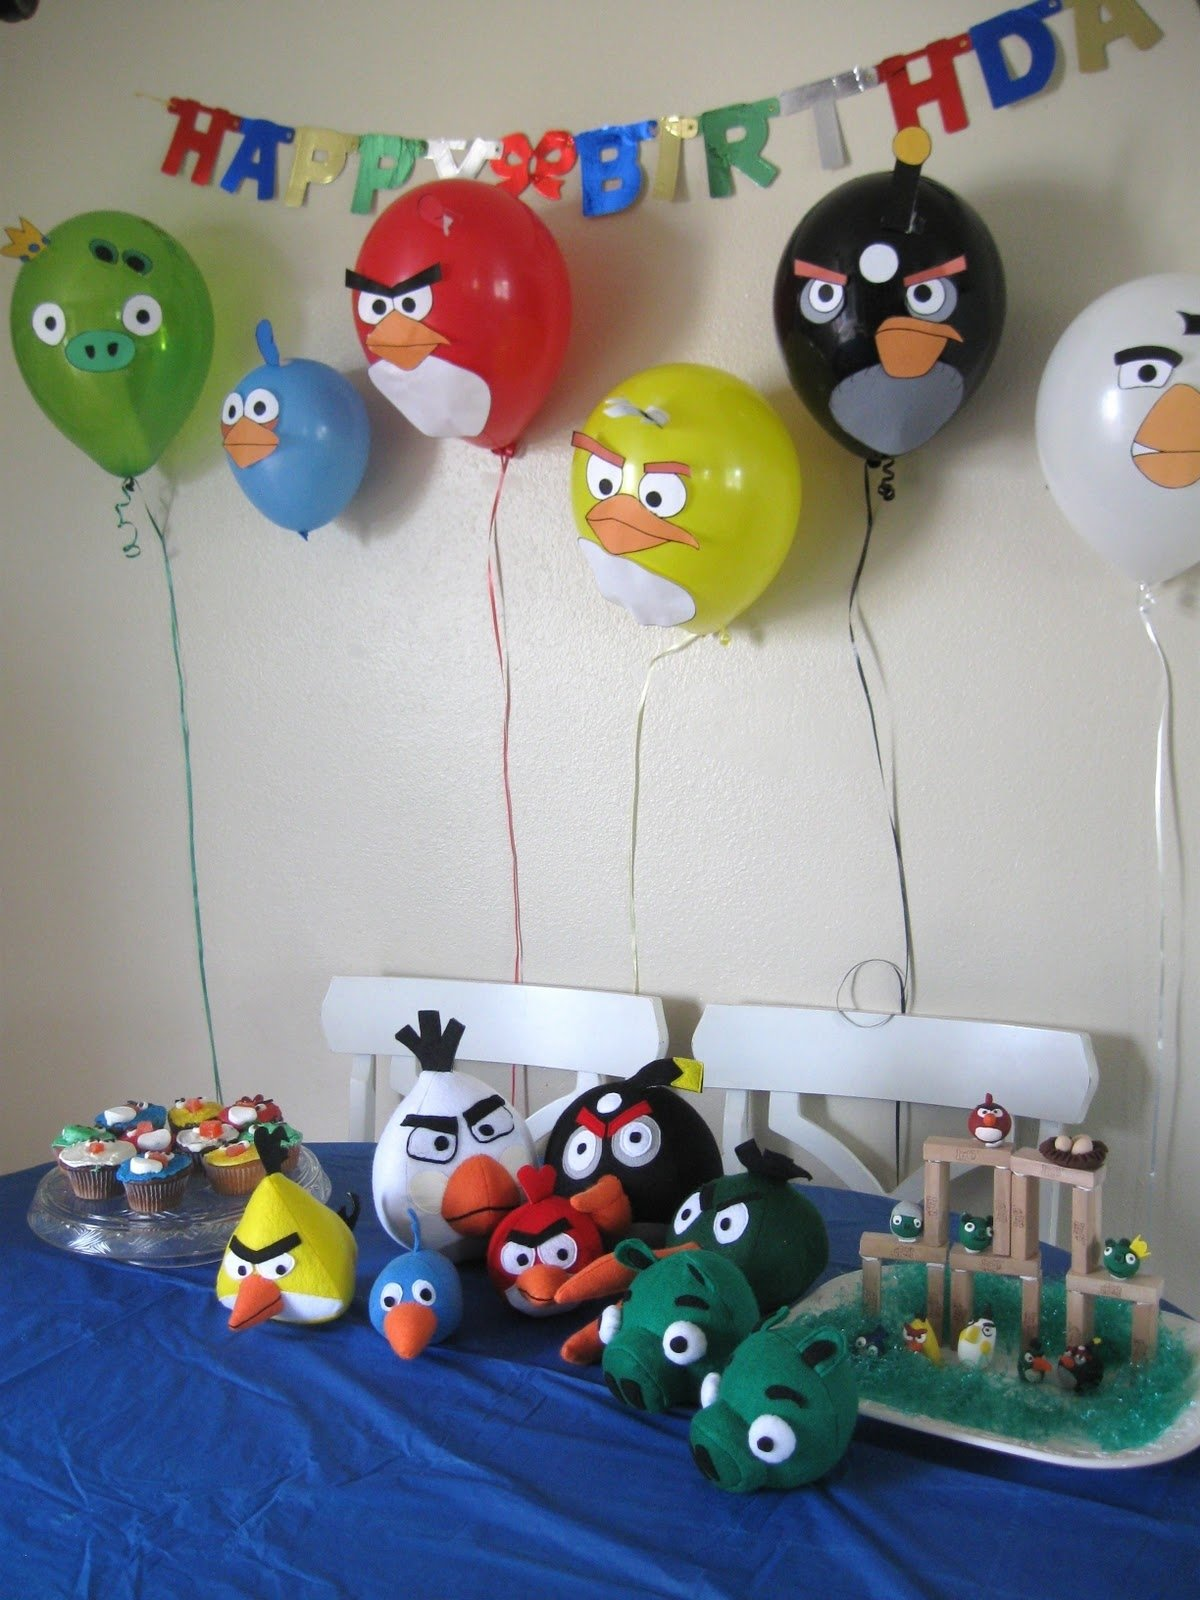 10 Great 2 Year Old Boy Birthday Party Ideas angry birds balloons jacks next birthday party idea ideas for 2